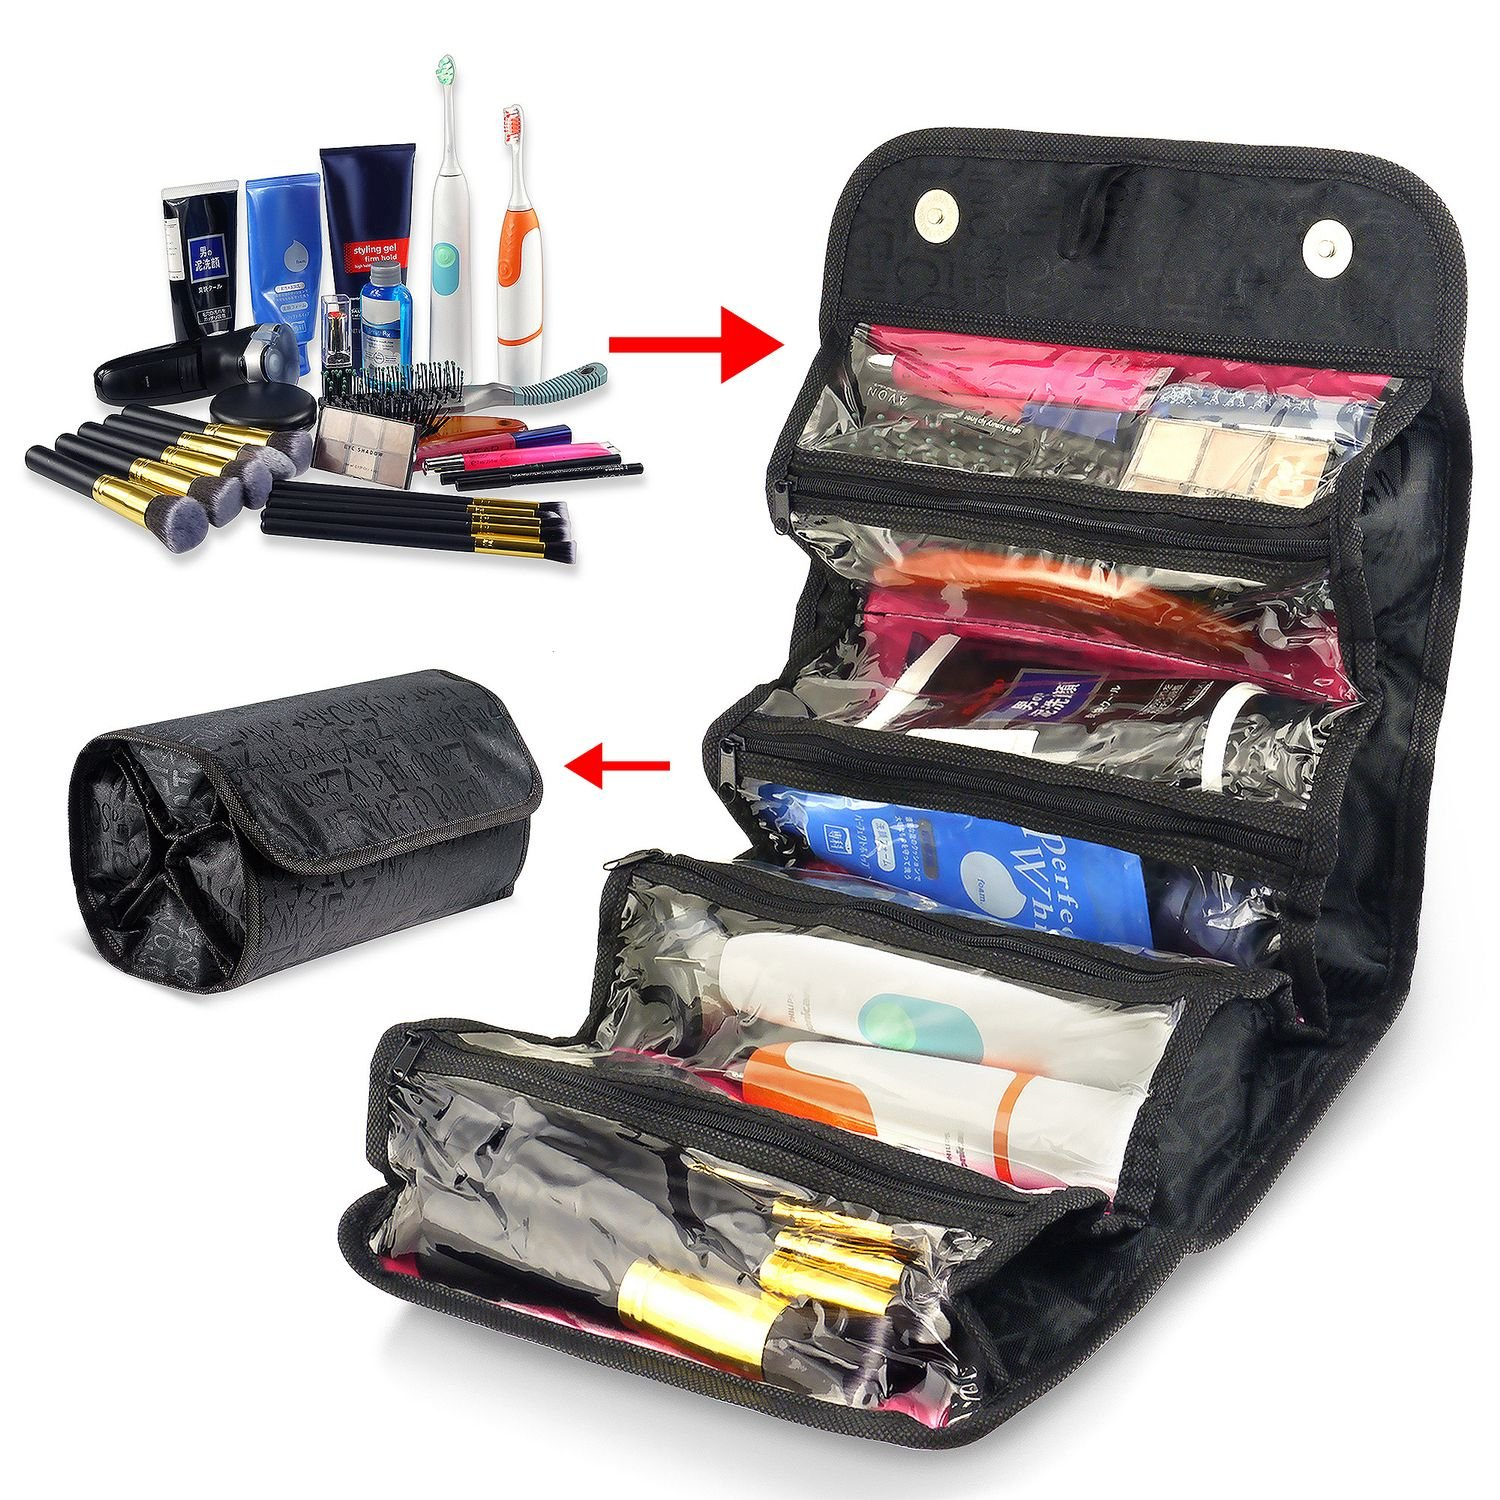 Zodaca 4 Zippered Compartment Roll Up Bathroom Organizer Cosmetic Travel Bag, Black eForCity 2122562